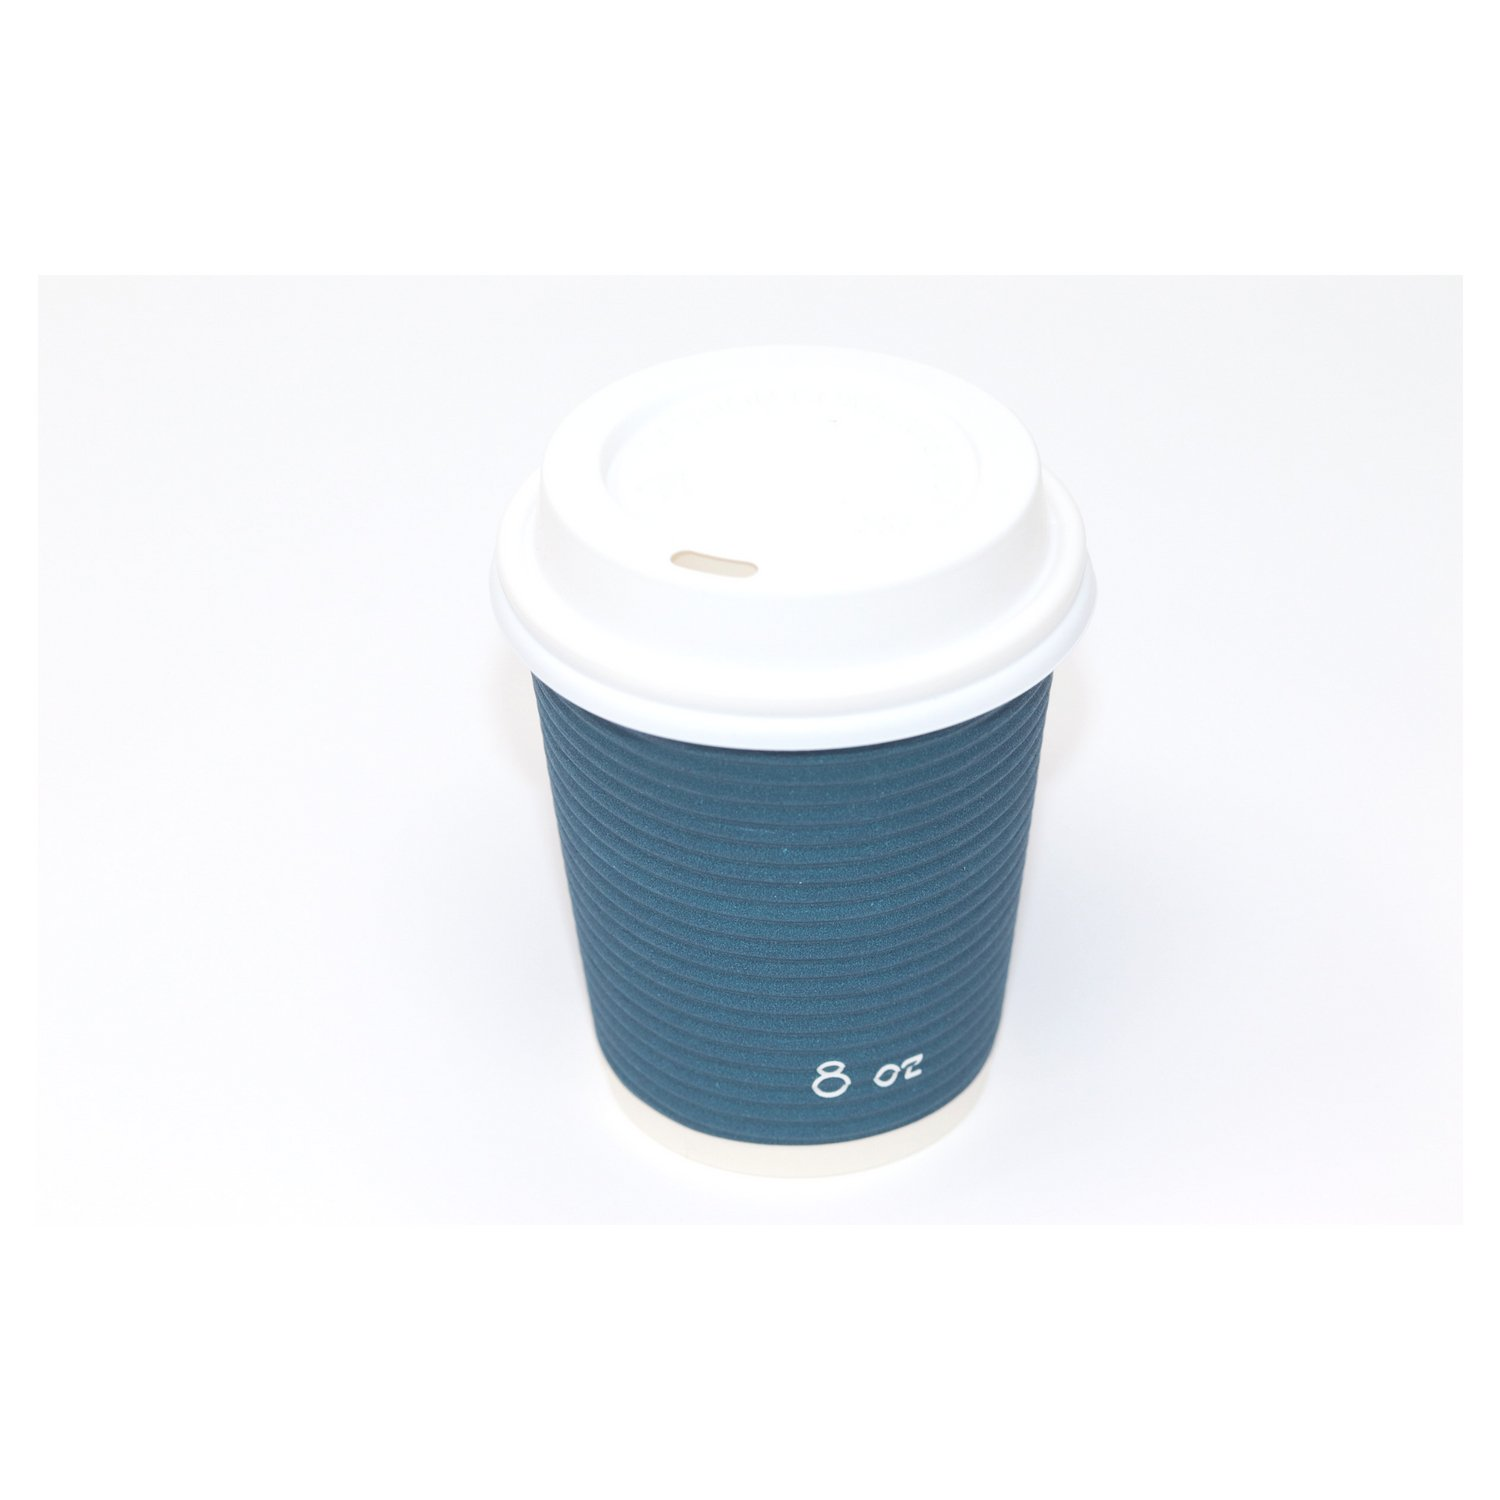 Disposable Insulated To Go Ripple Biodegradable Hot Coffee Cups with Lids [8 oz with Lid] by Berkley Square (Image #3)